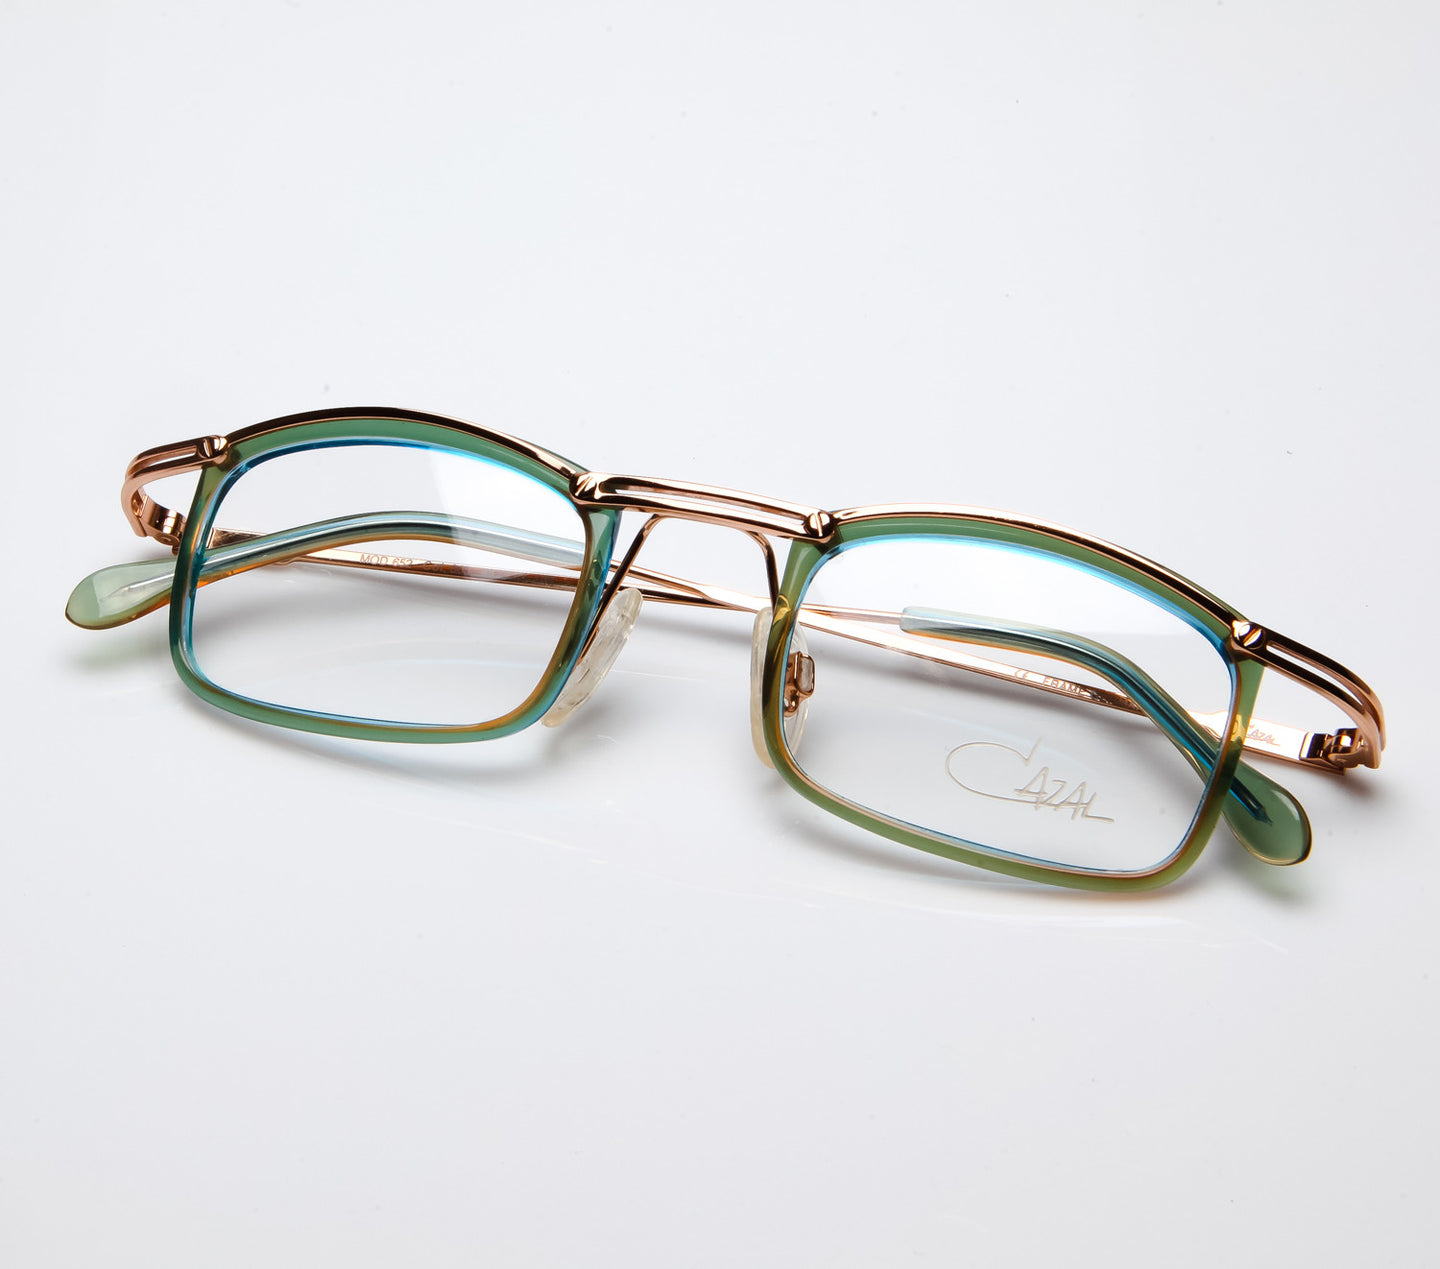 Cazal 652 865, Cazal , glasses frames, eyeglasses online, eyeglass frames, mens glasses, womens glasses, buy glasses online, designer eyeglasses, vintage sunglasses, retro sunglasses, vintage glasses, sunglass, eyeglass, glasses, lens, vintage frames company, vf